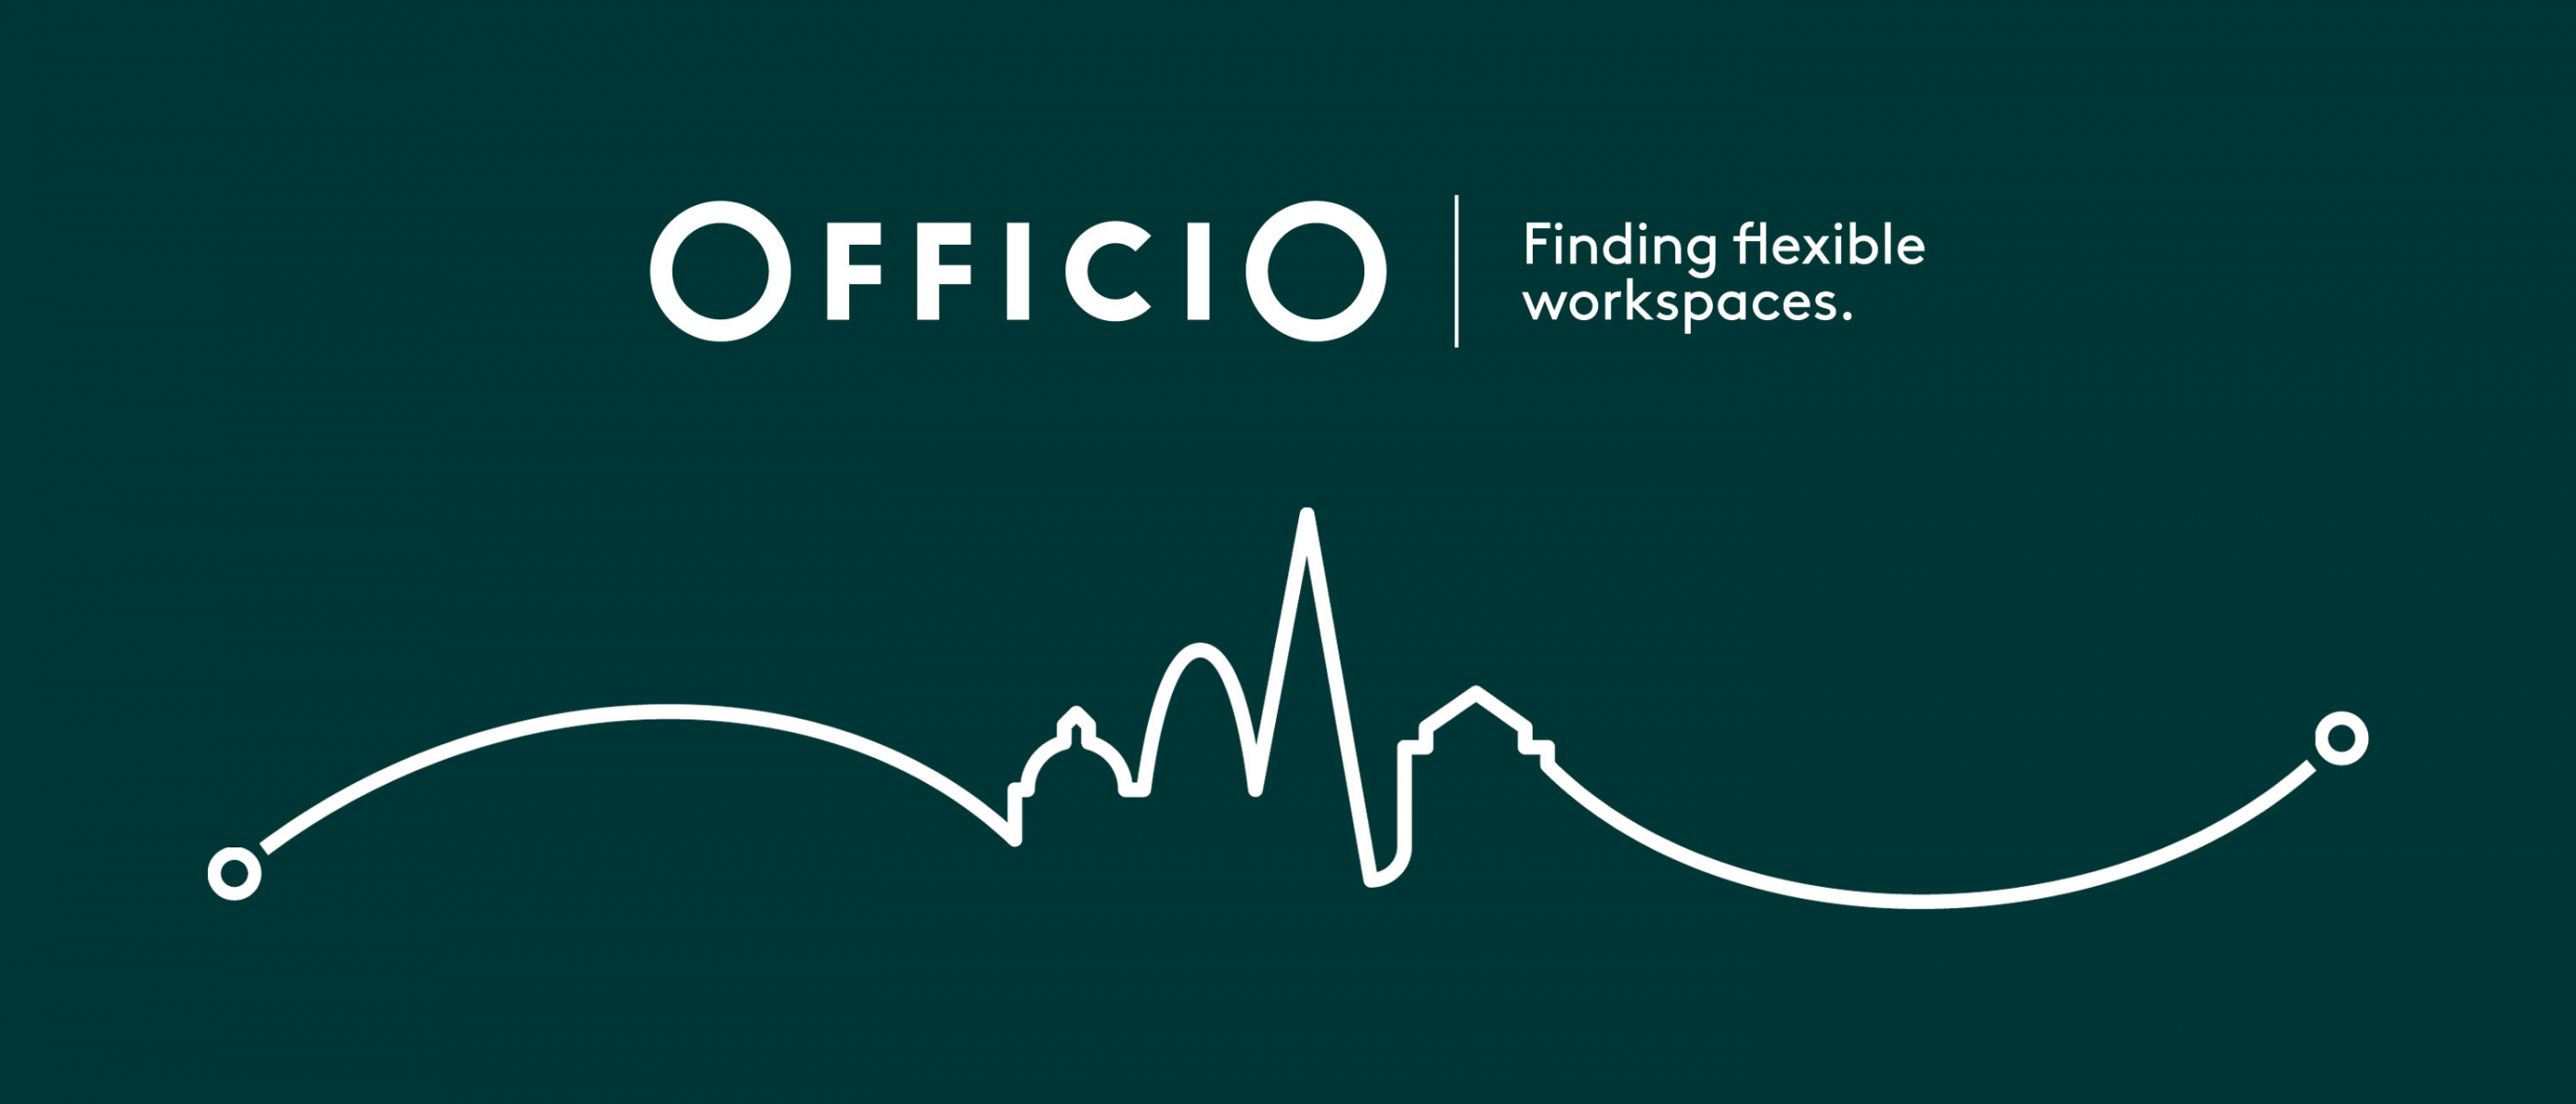 Finding flexible workspace